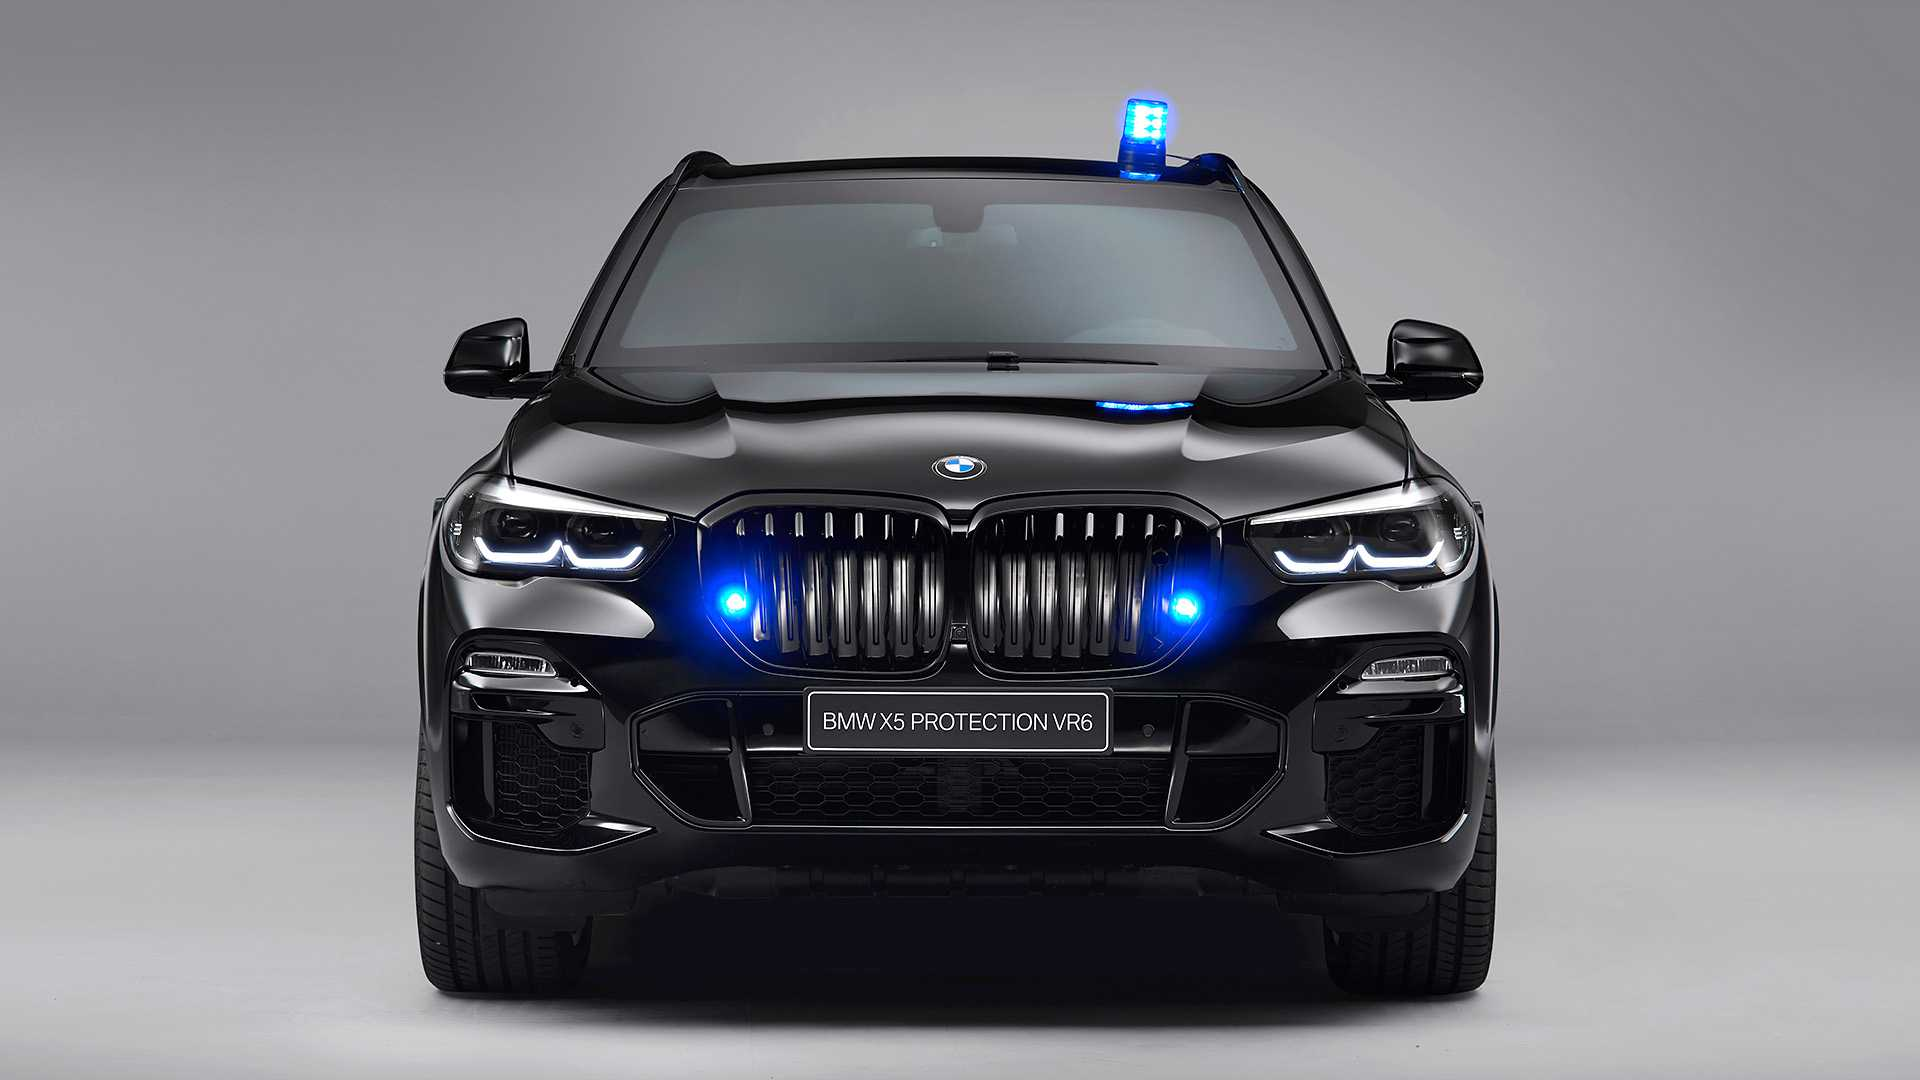 The new armored BMW X5 was created to withstand the rifle and drone attacks